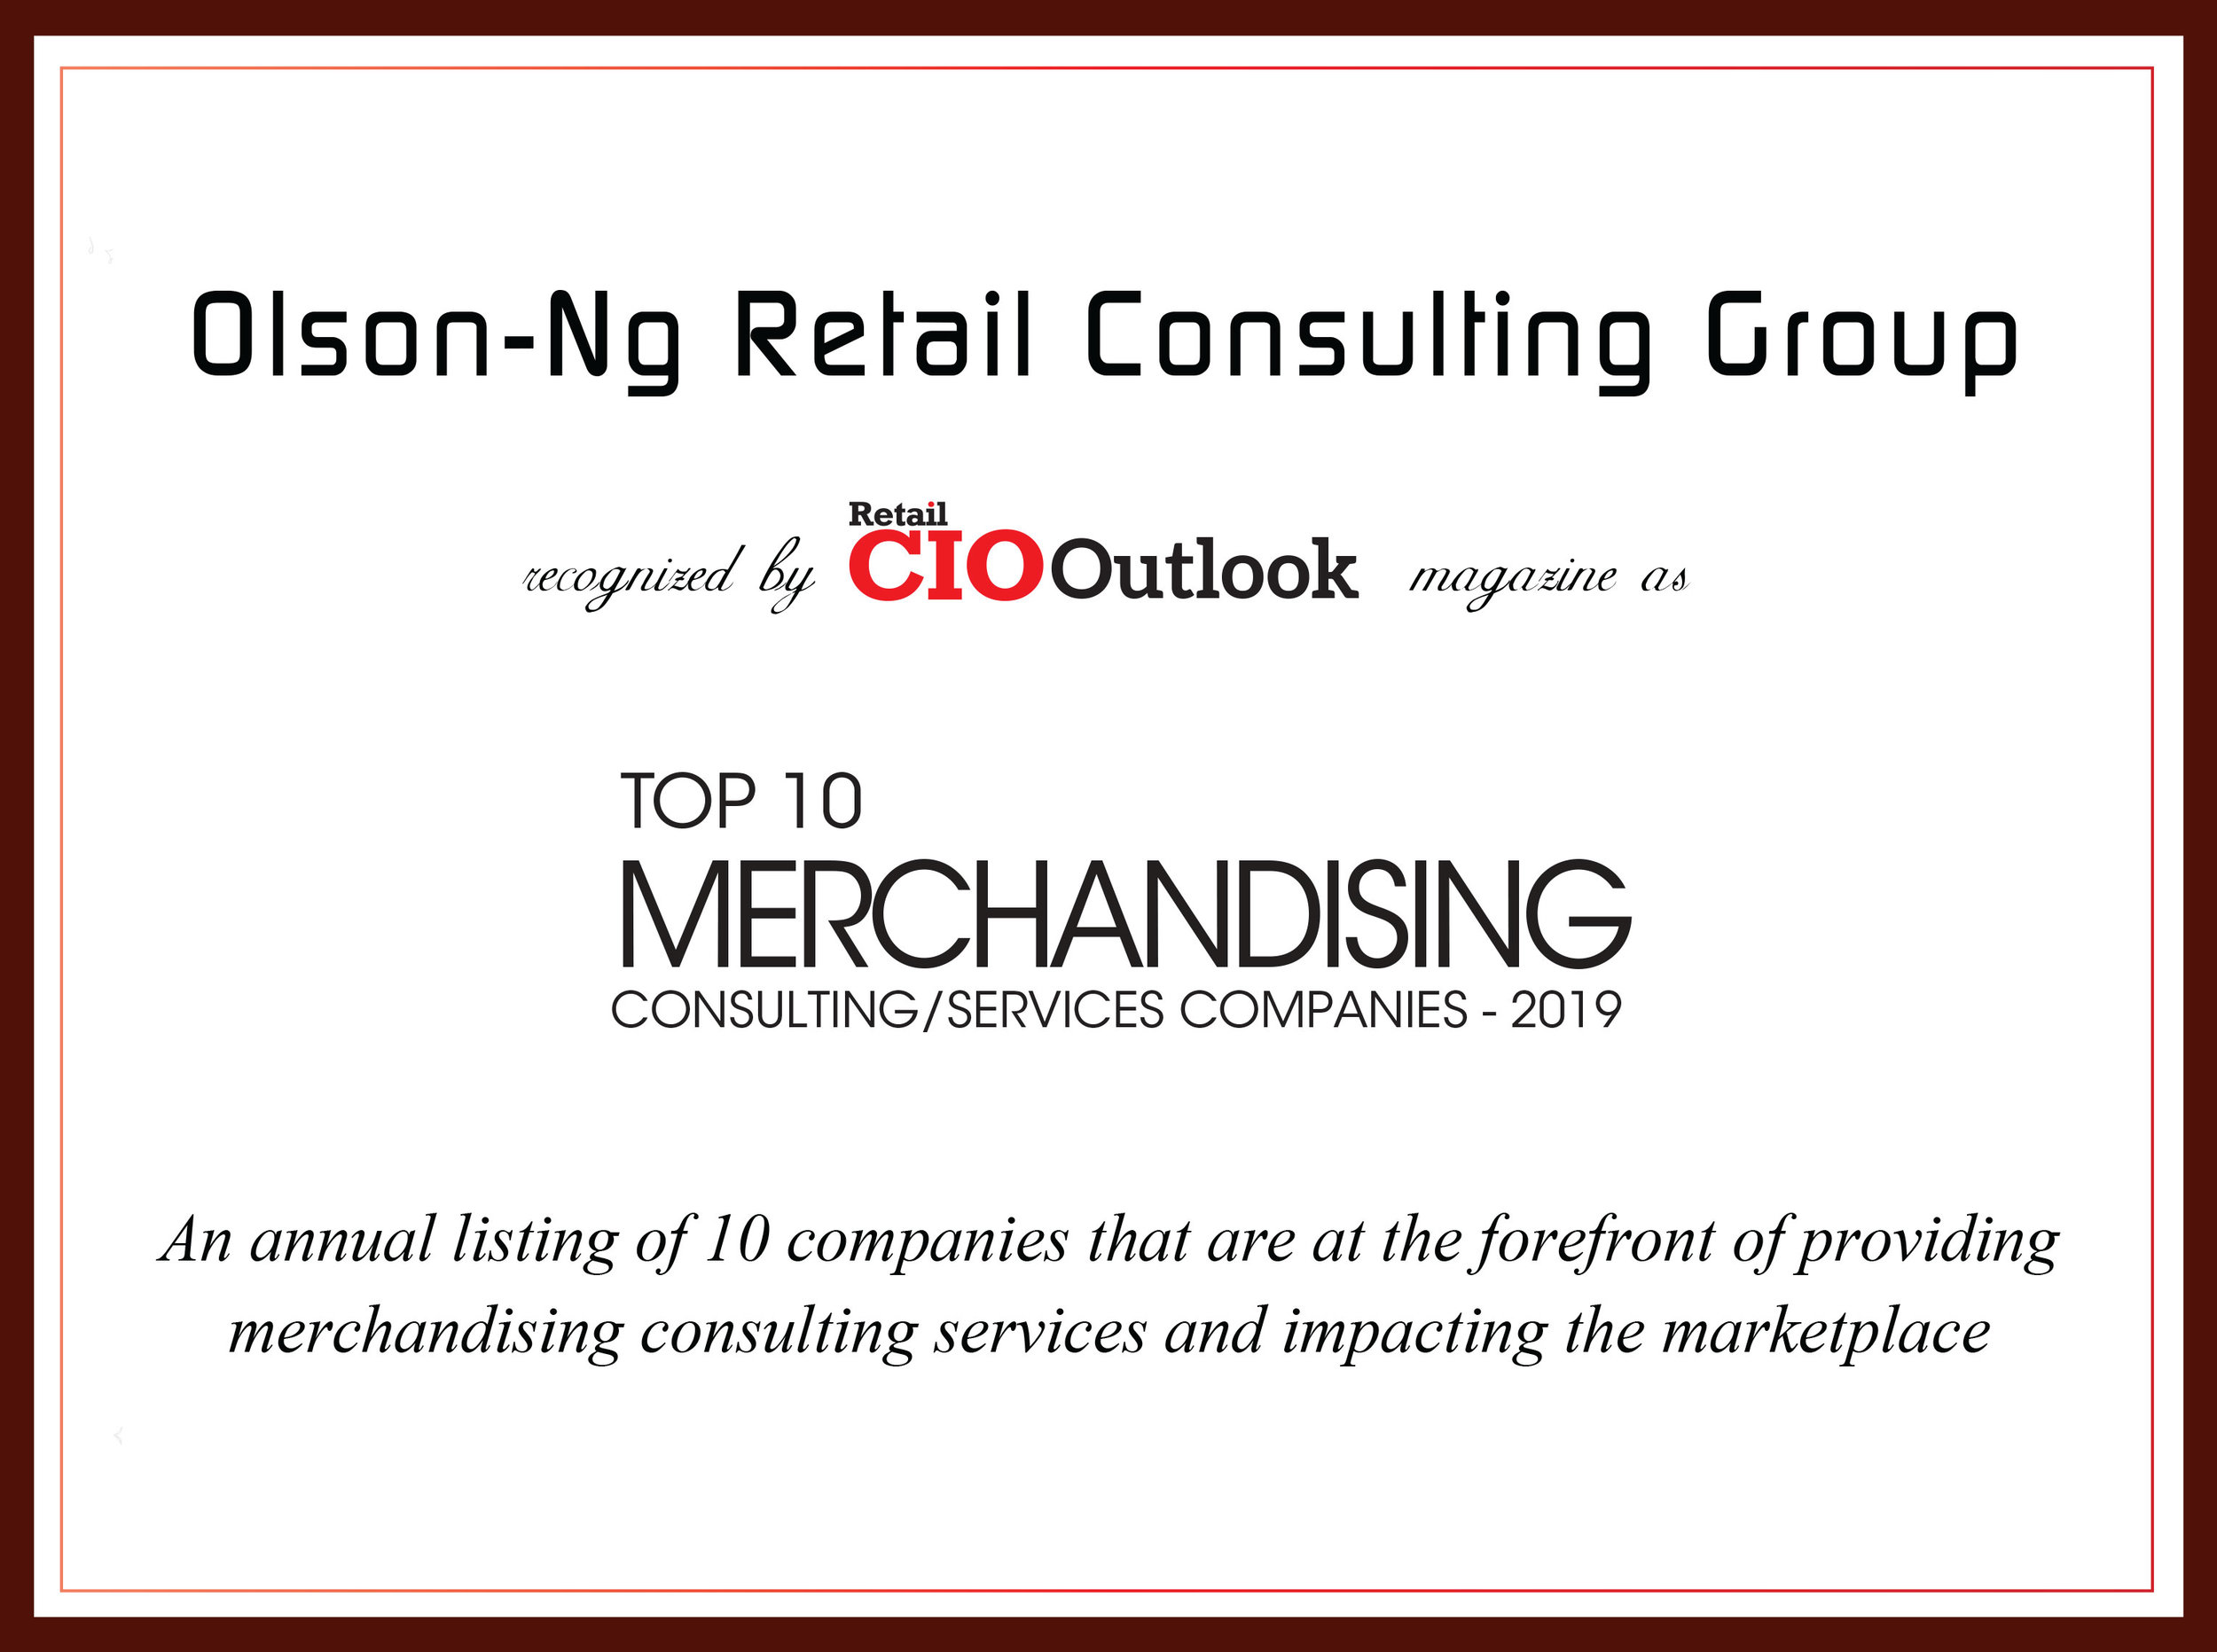 Olson-Ng-Retail-Consulting--Group-Certificate.jpg